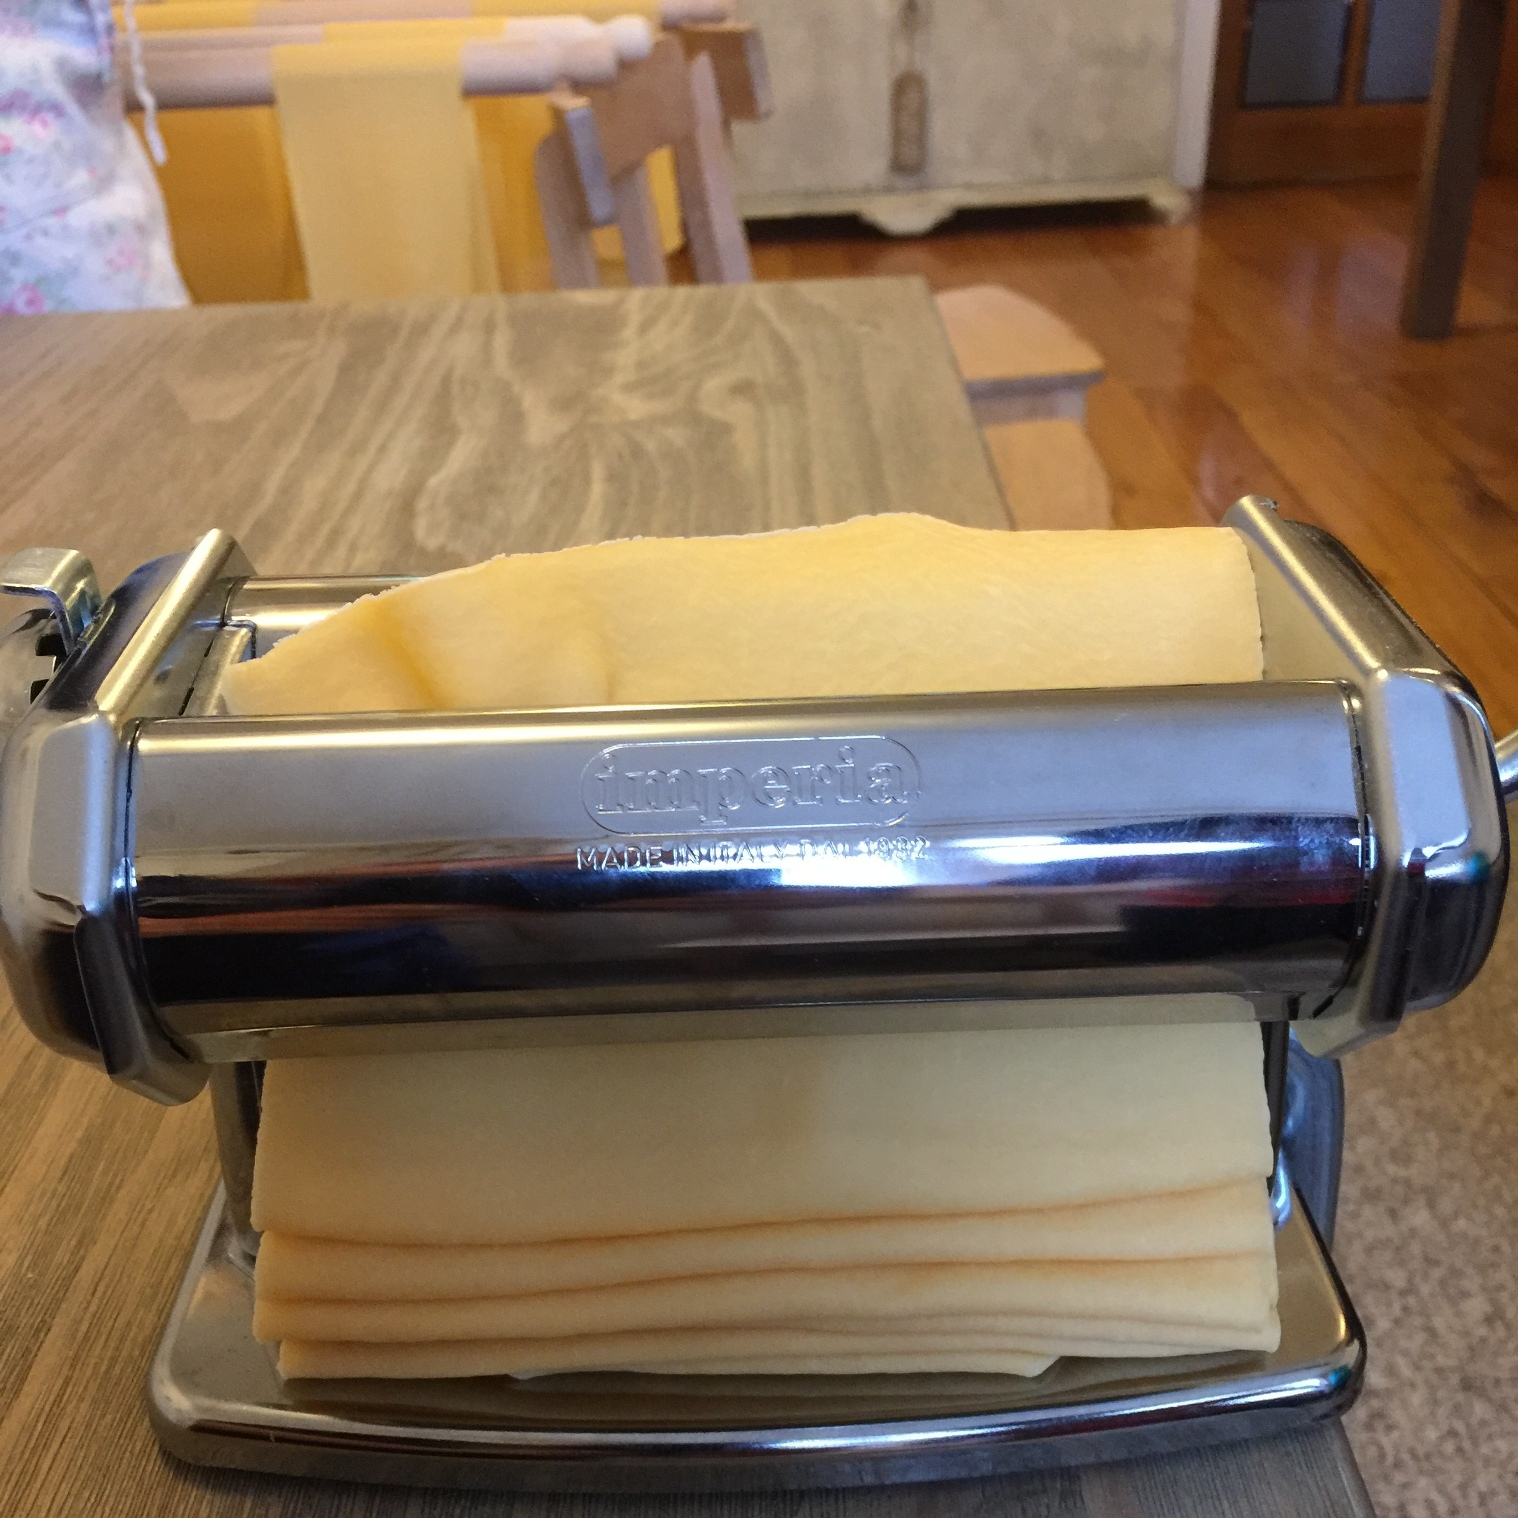 My dough going through the pasta machine